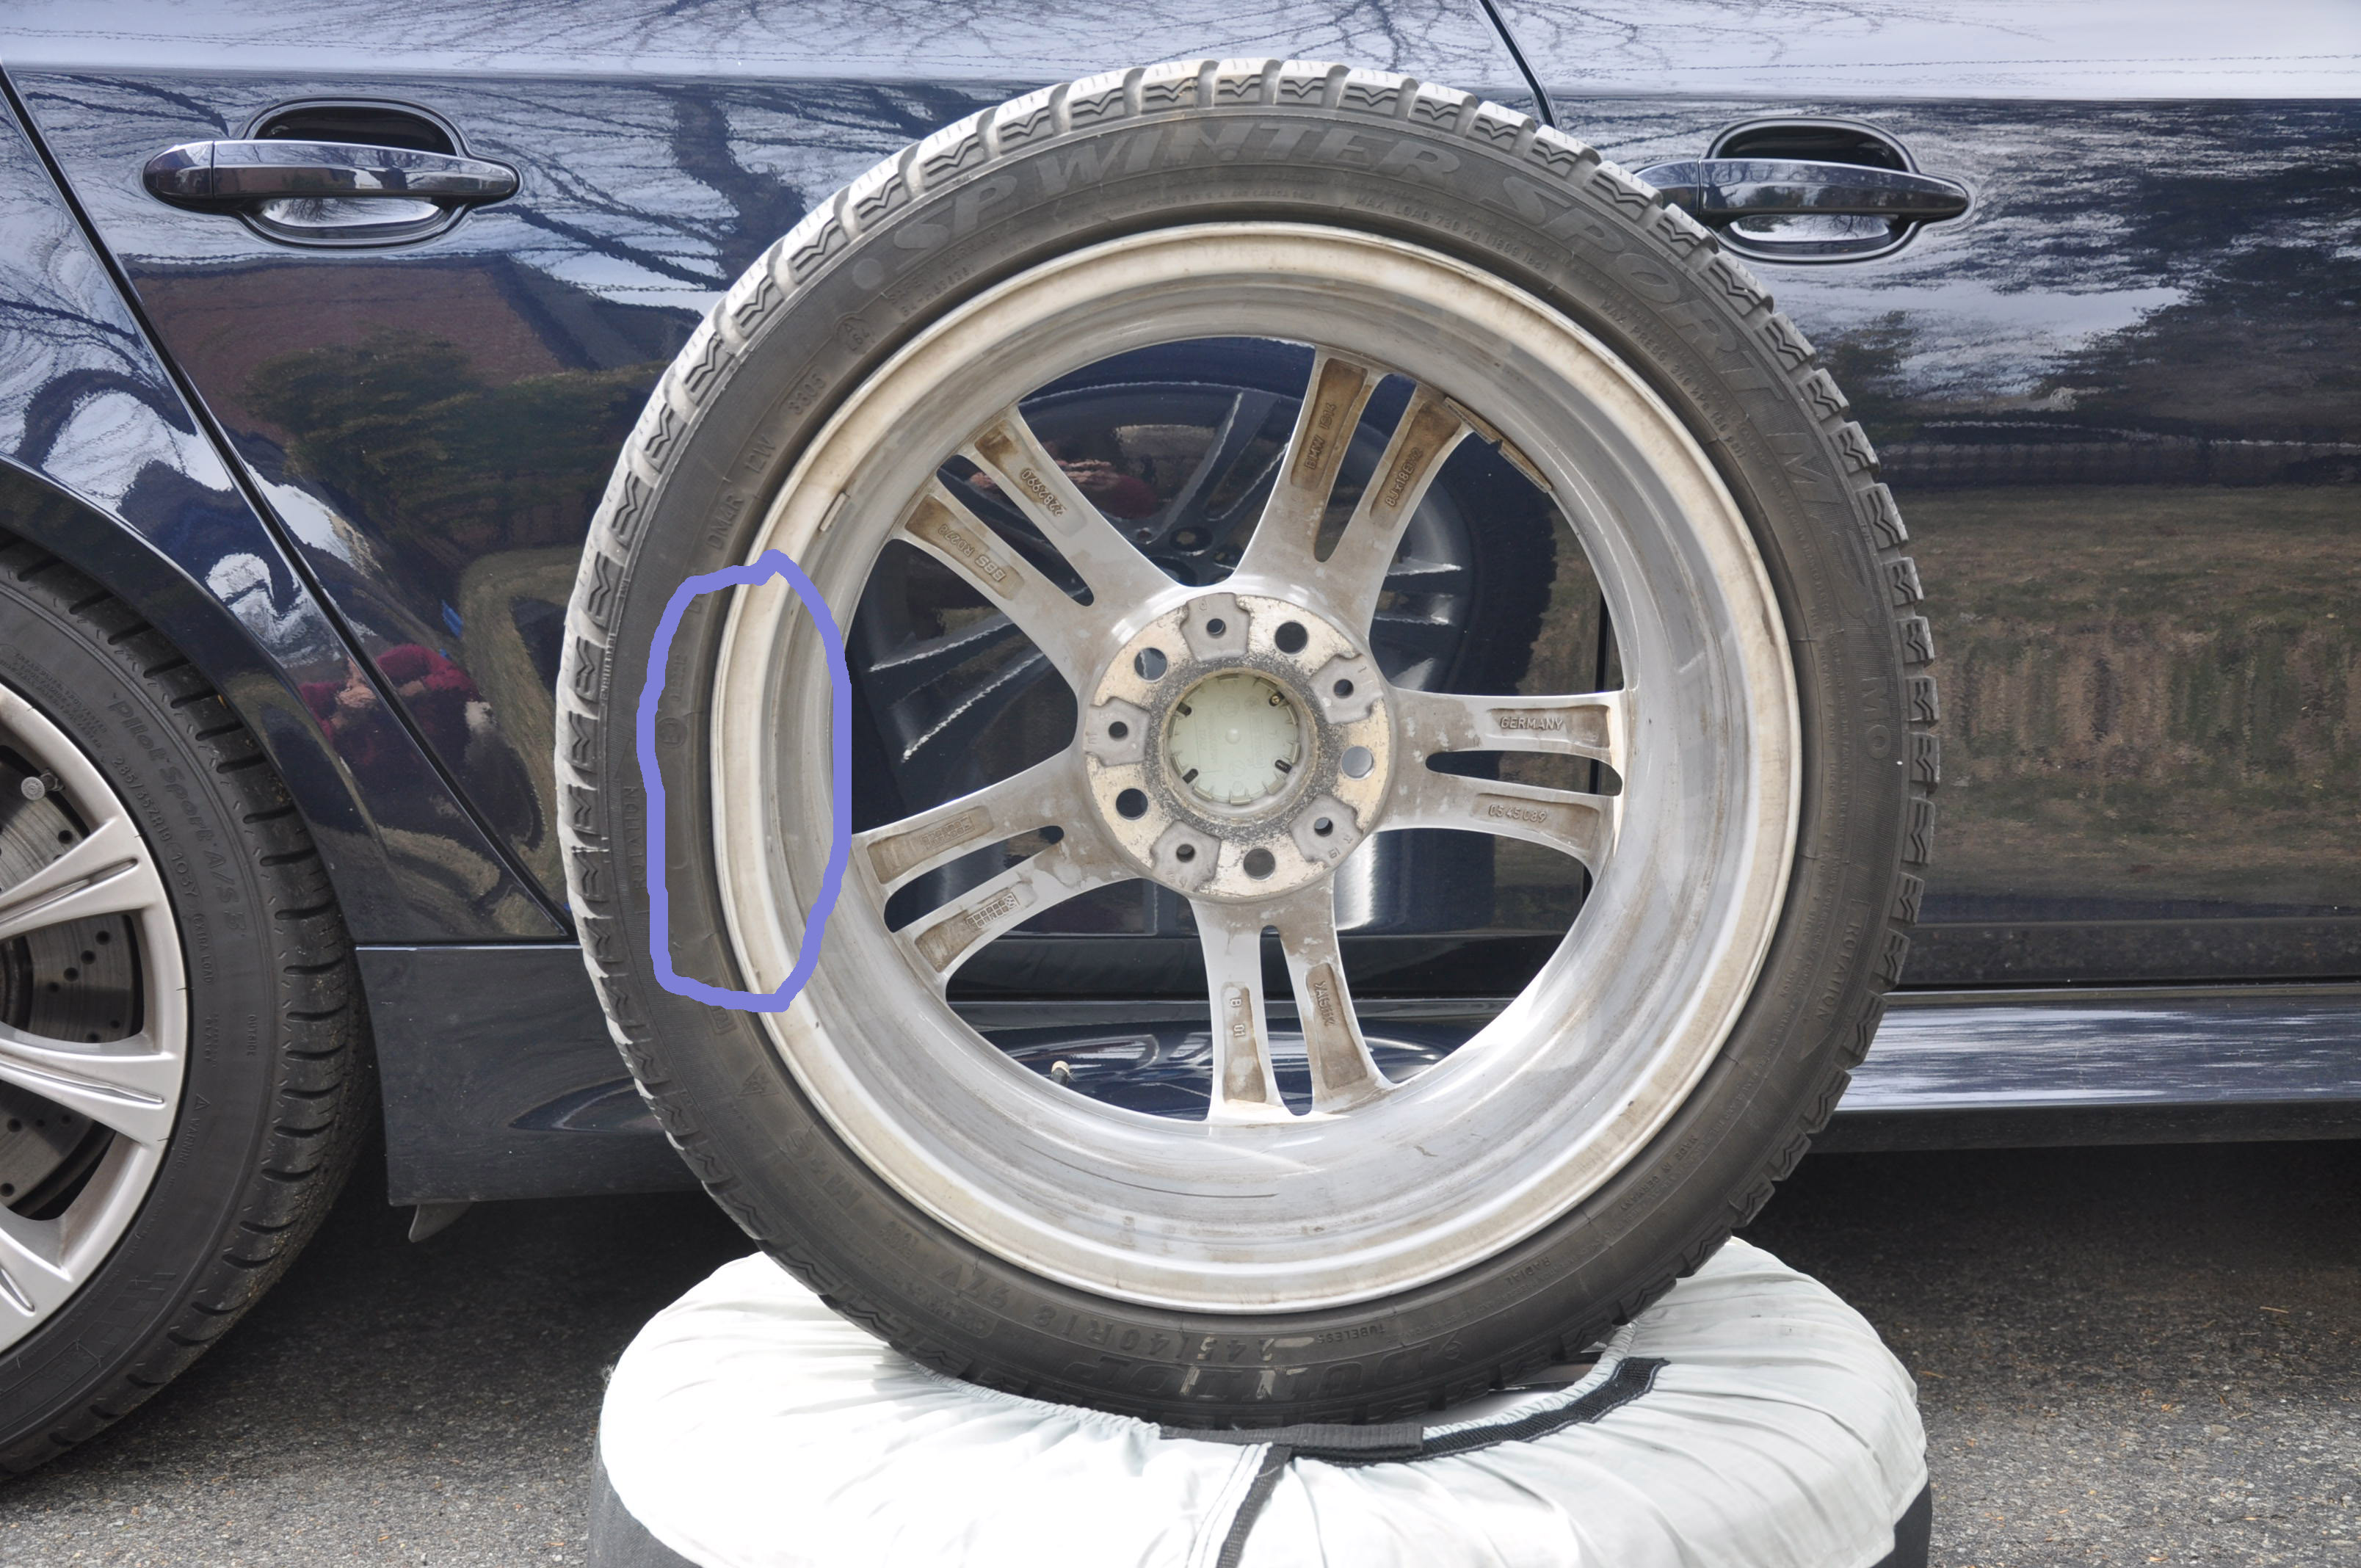 Advice re Bent Rim from Craigslist Seller BMW M5 Forum and M6 Forums